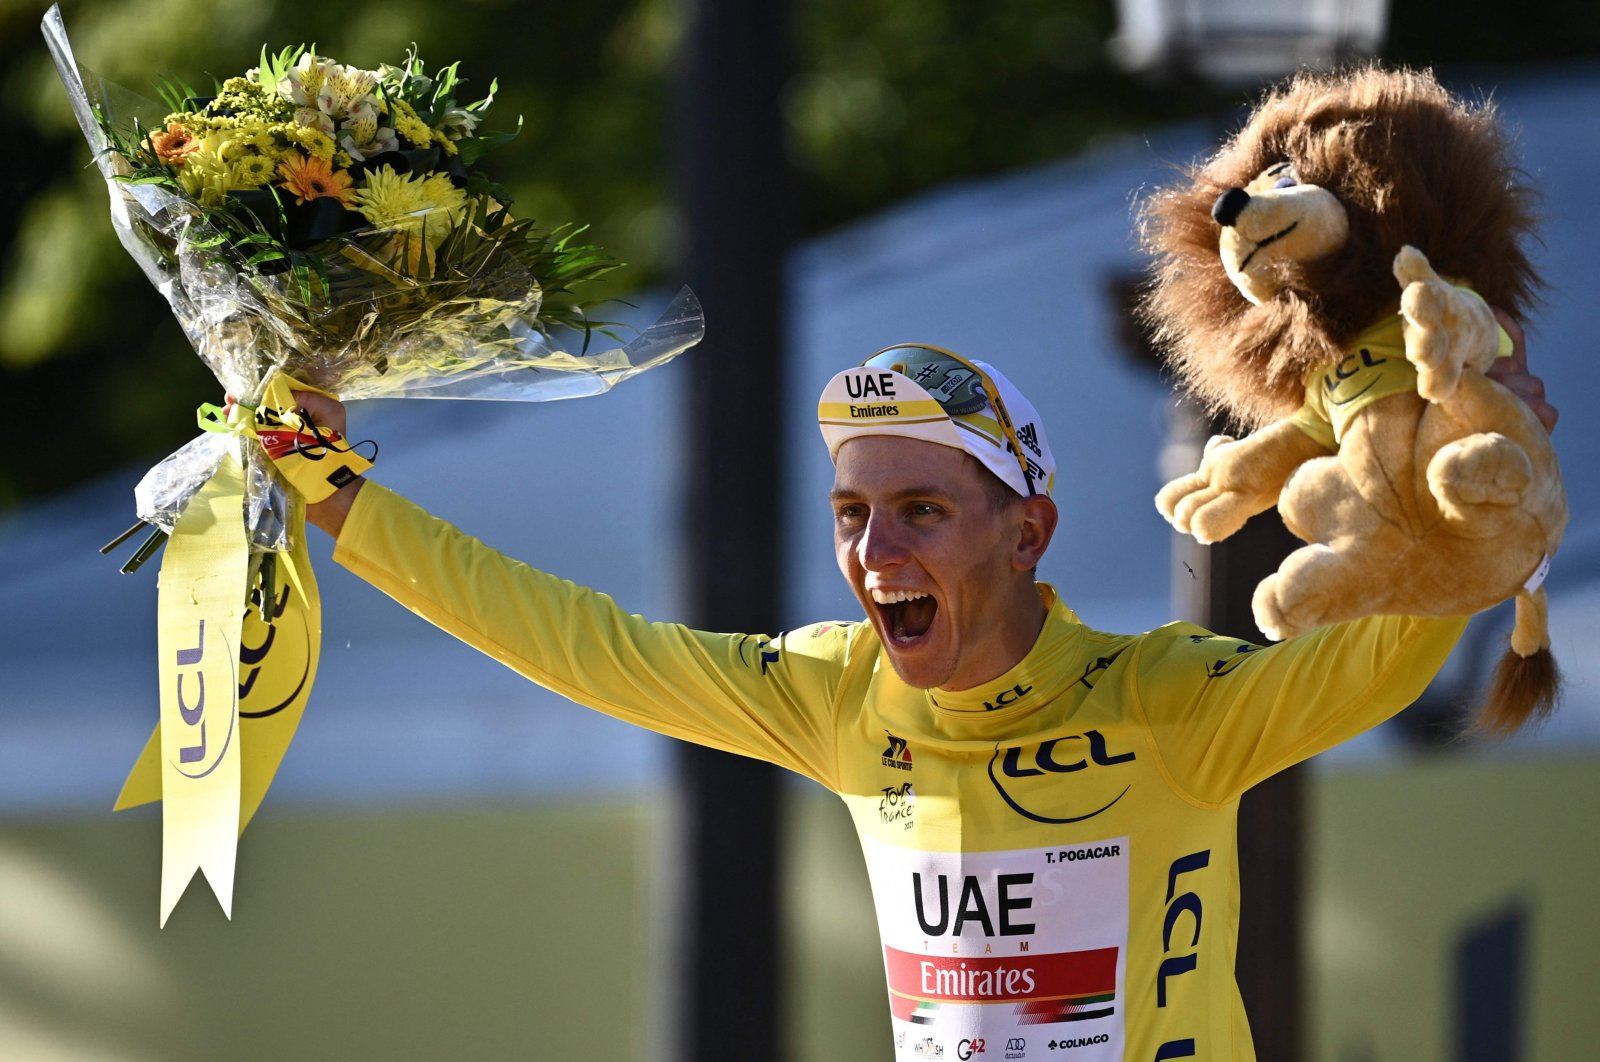 Team UAE Emirates' Tadej Pogacar of Slovenia celebrates his overall leader yellow jersey on the podium at the end of the 21st and last stage of the 108th edition of the Tour de France, July 18, 2021. (AFP Photo)